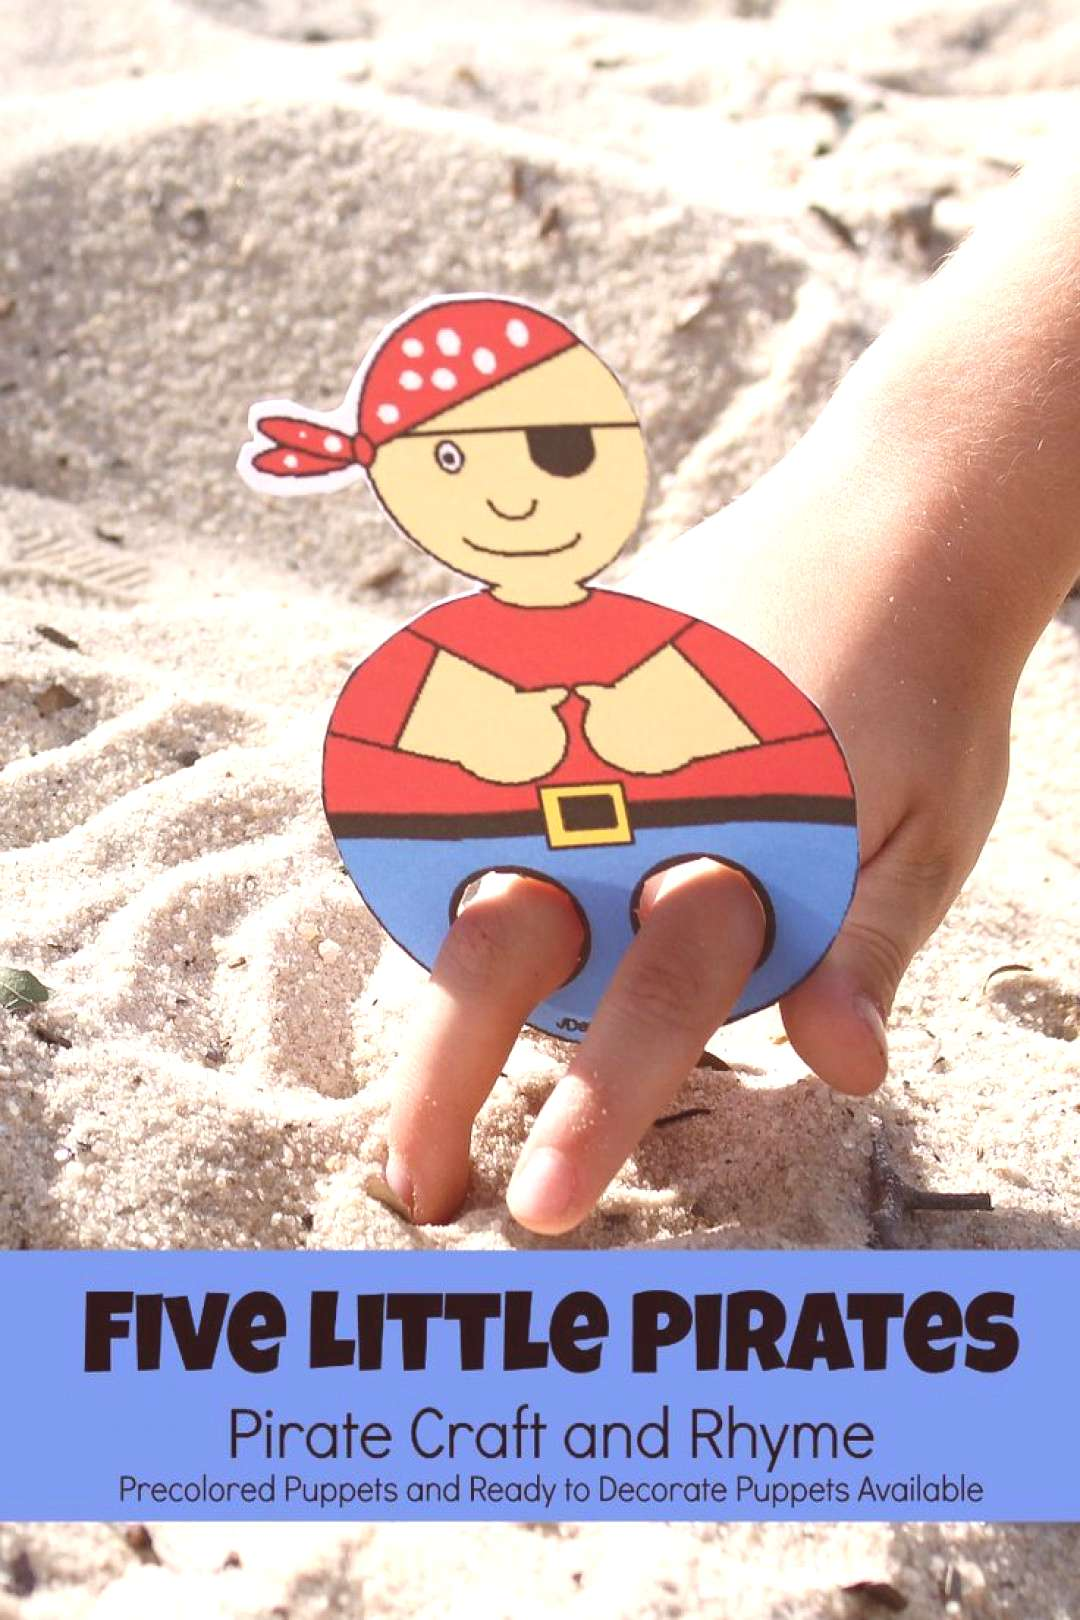 Five Little Pirates Pirate Craft and Printable Five Little Pirates Pirate Craft and Printable